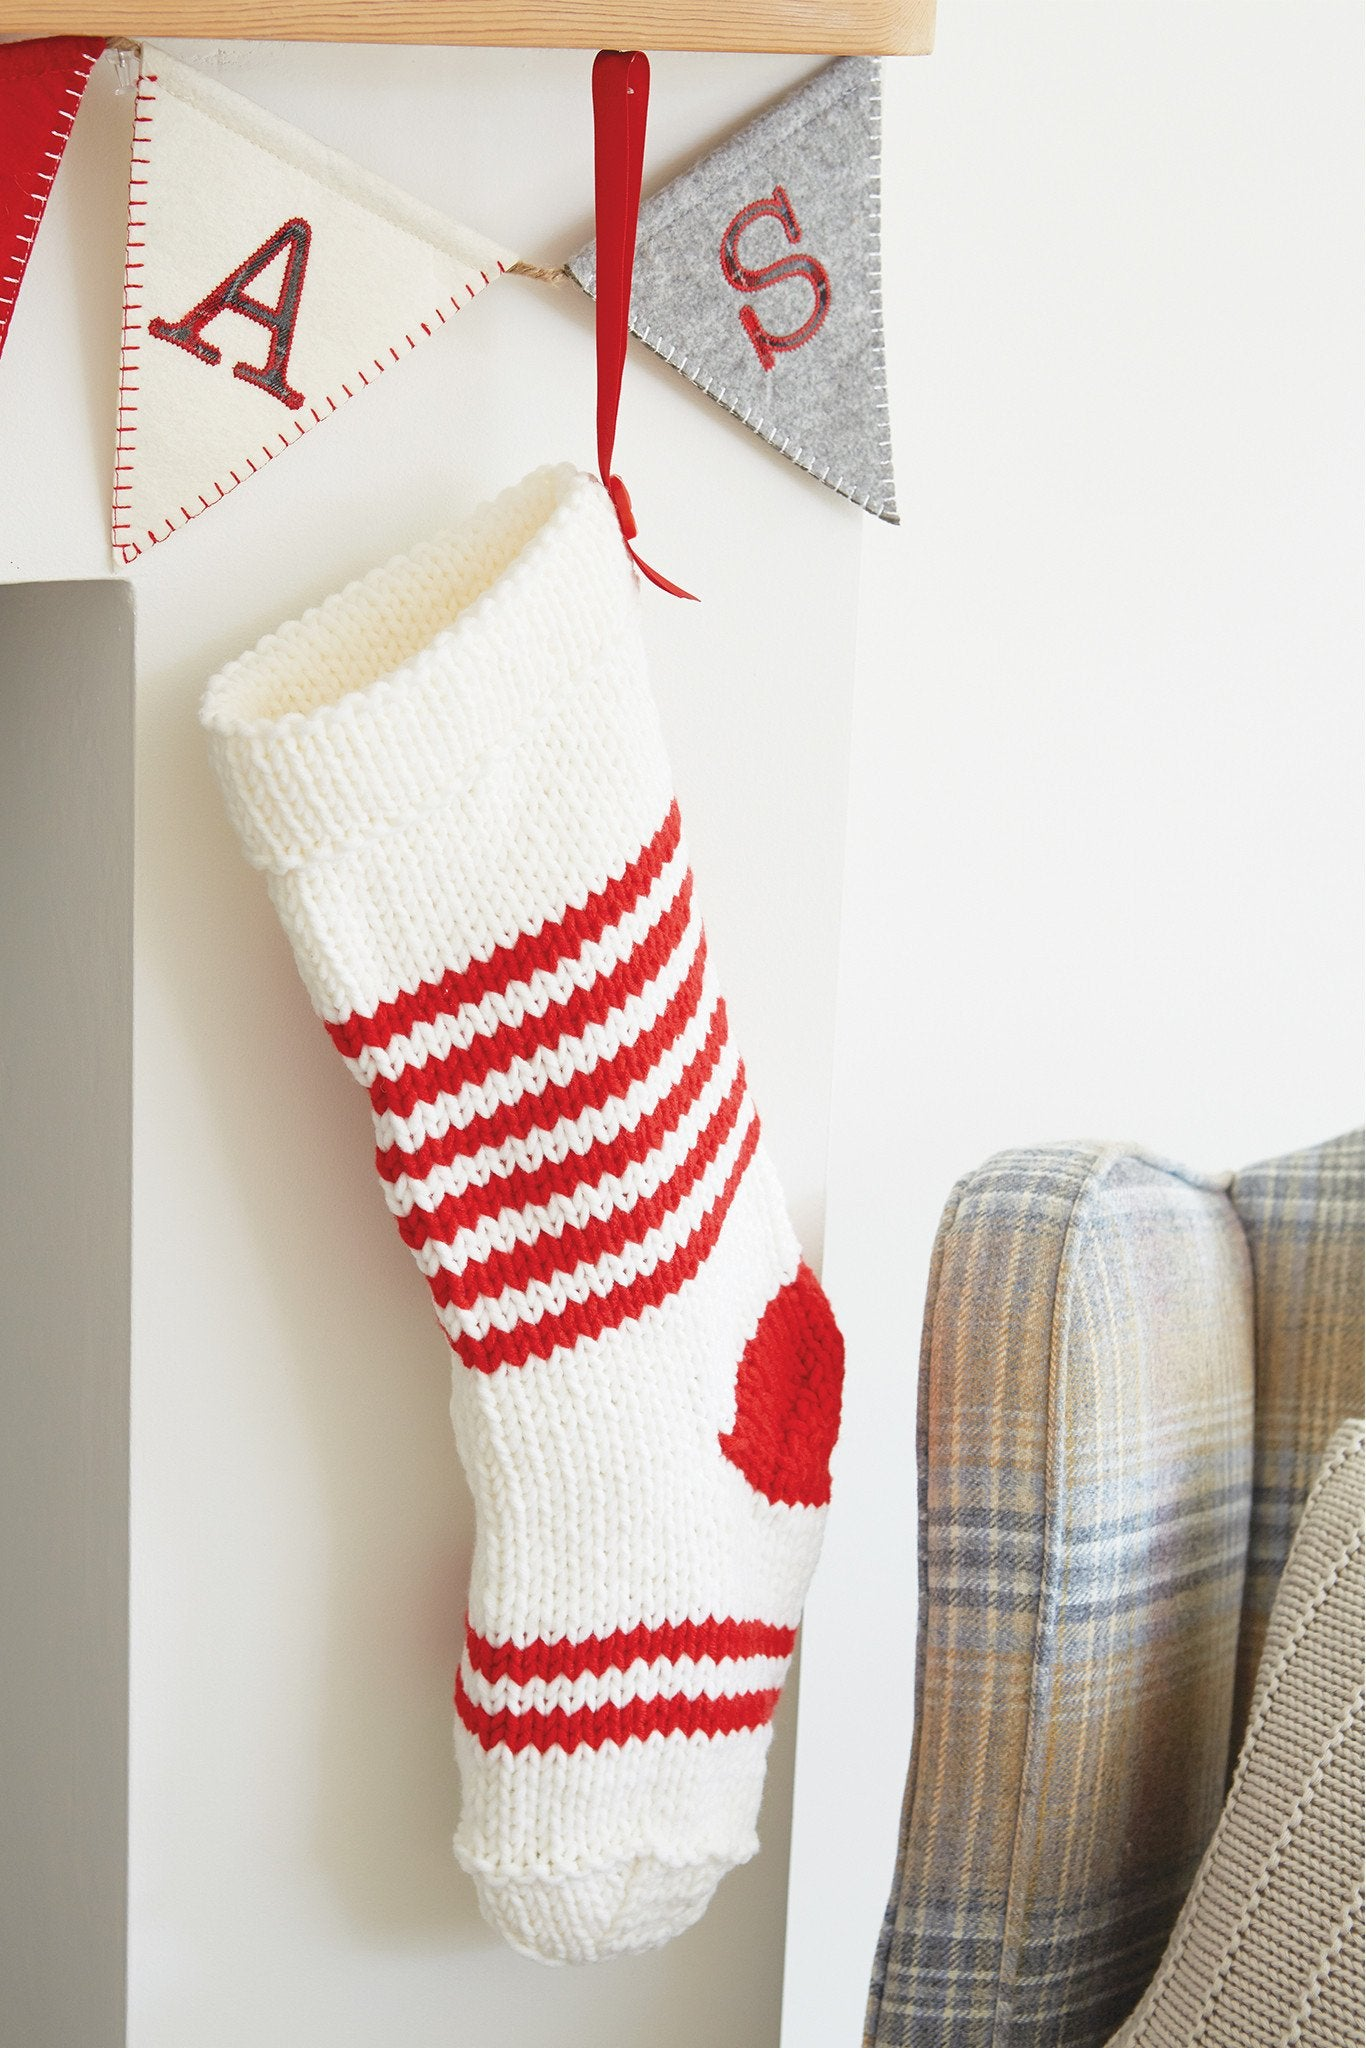 Christmas Stocking Knitting Patterns – The Knitting Network